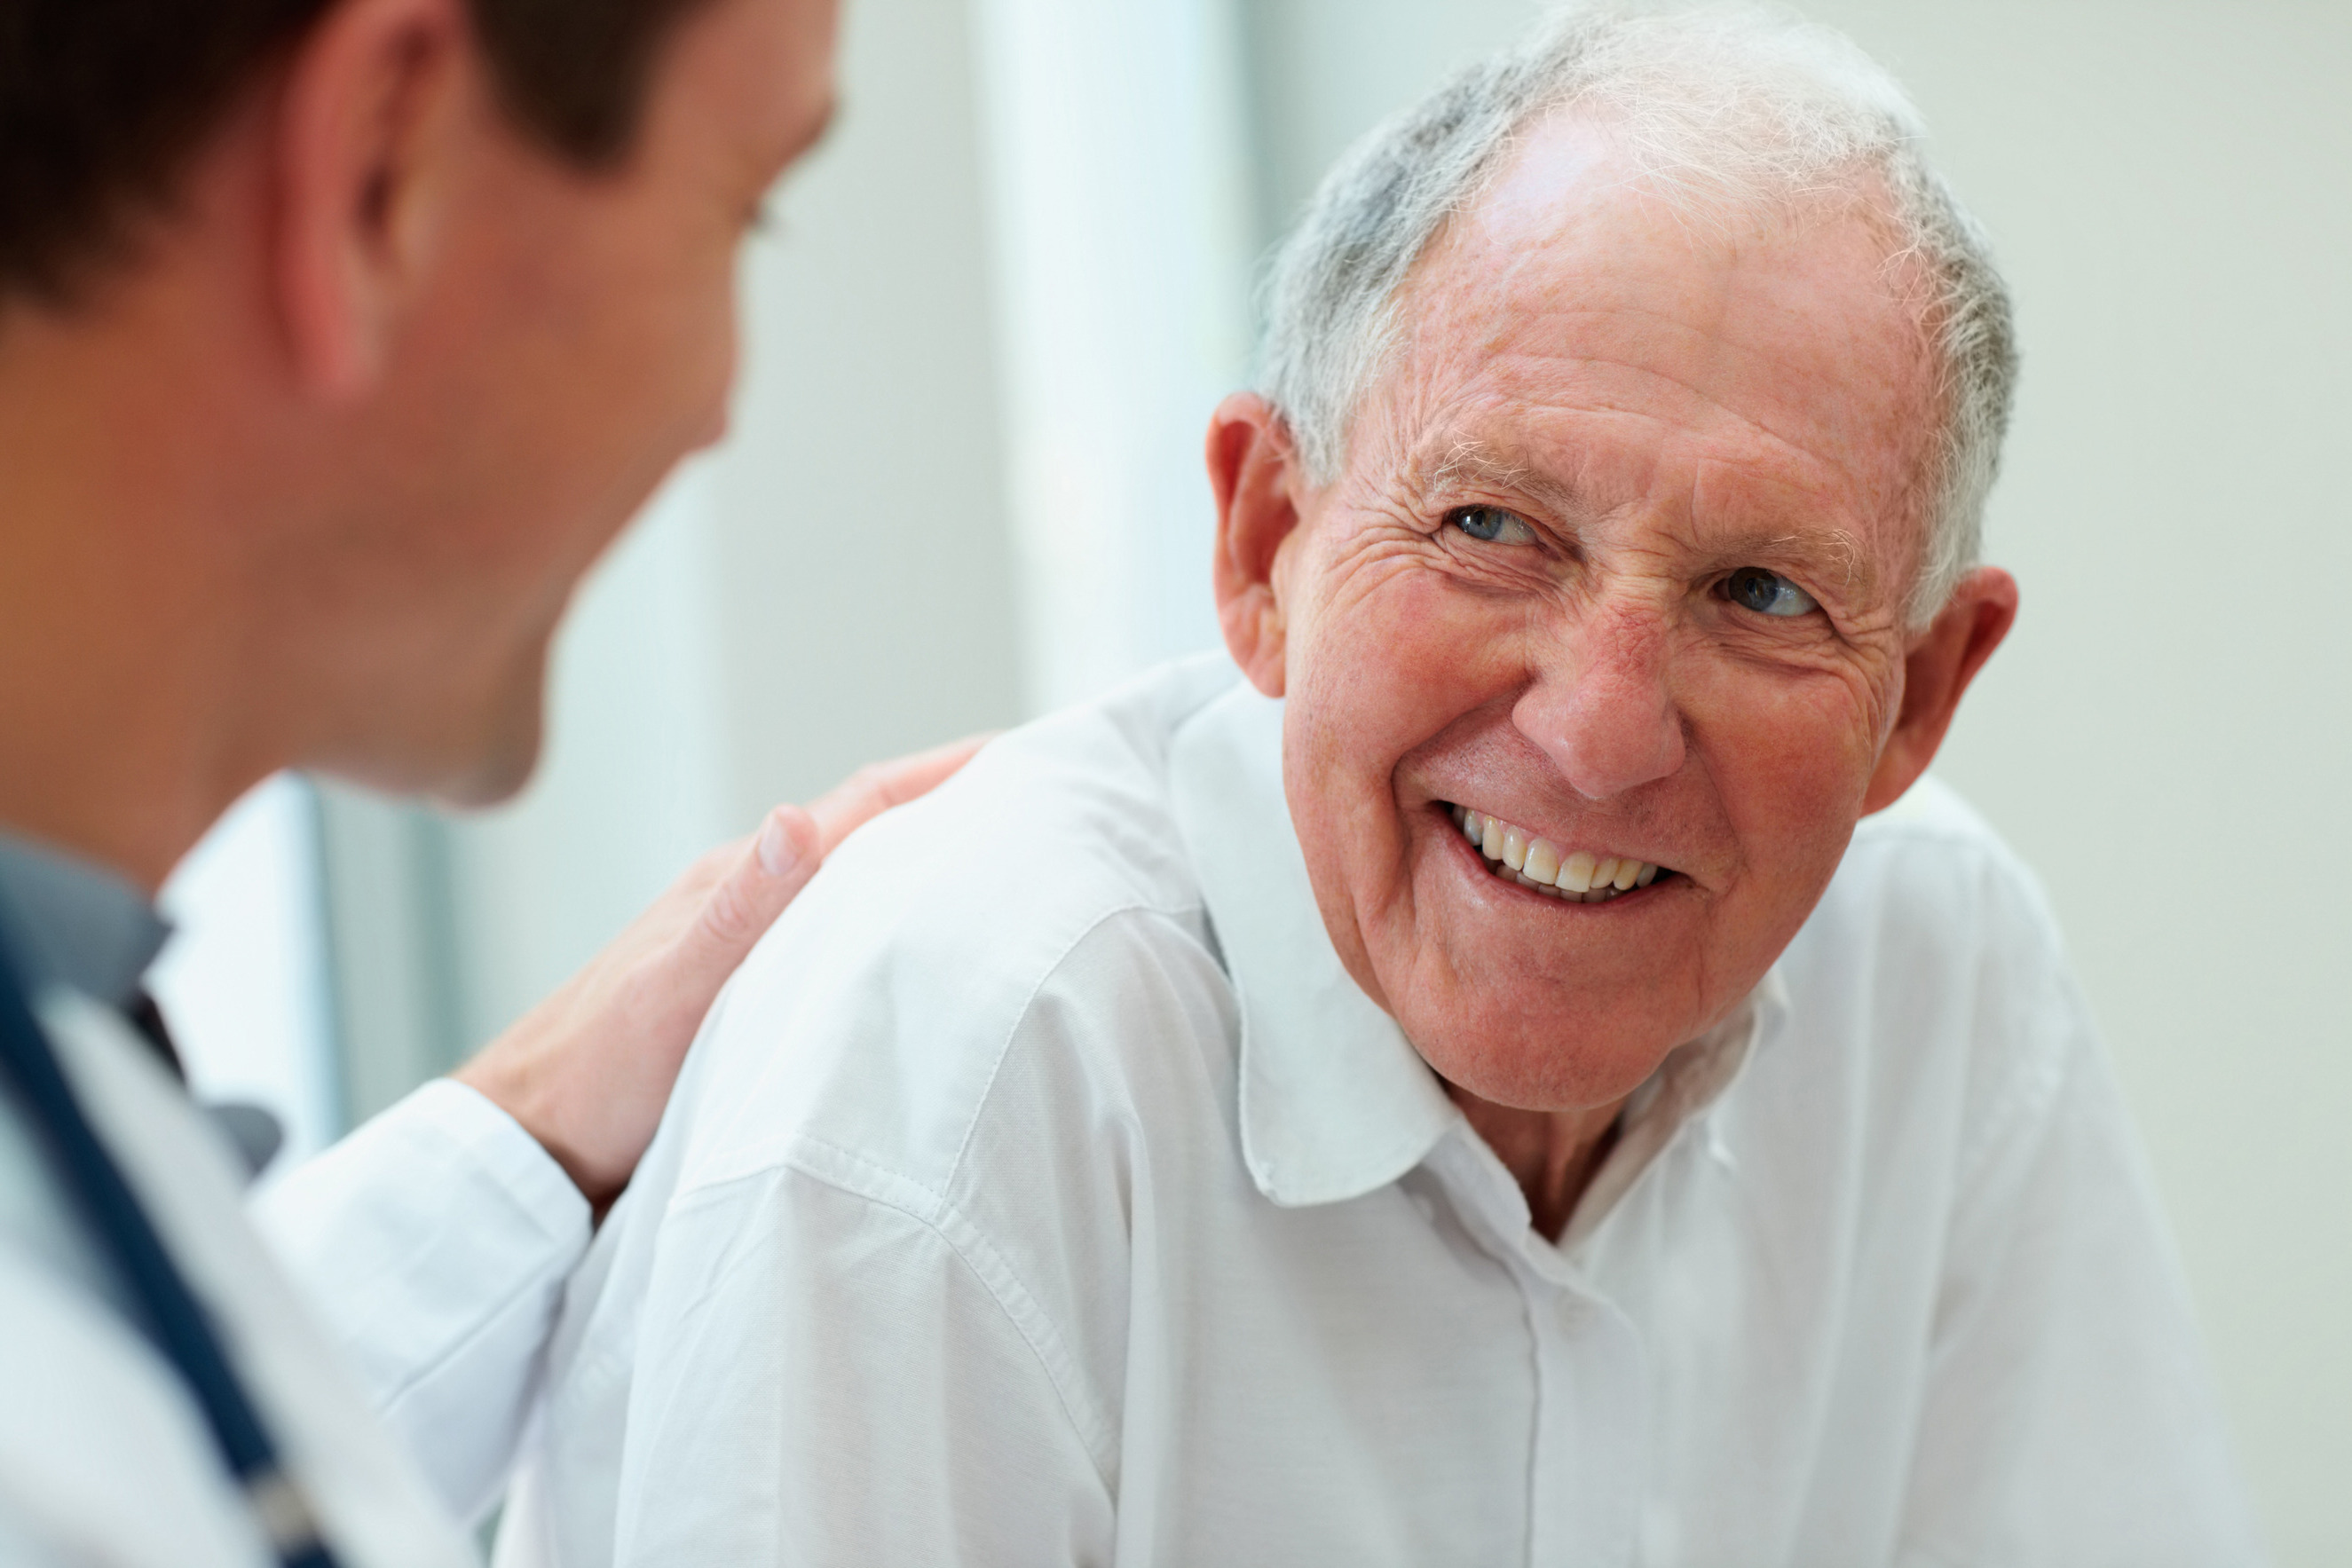 Happy senior citizen having a casual small talk with the friendly doctor